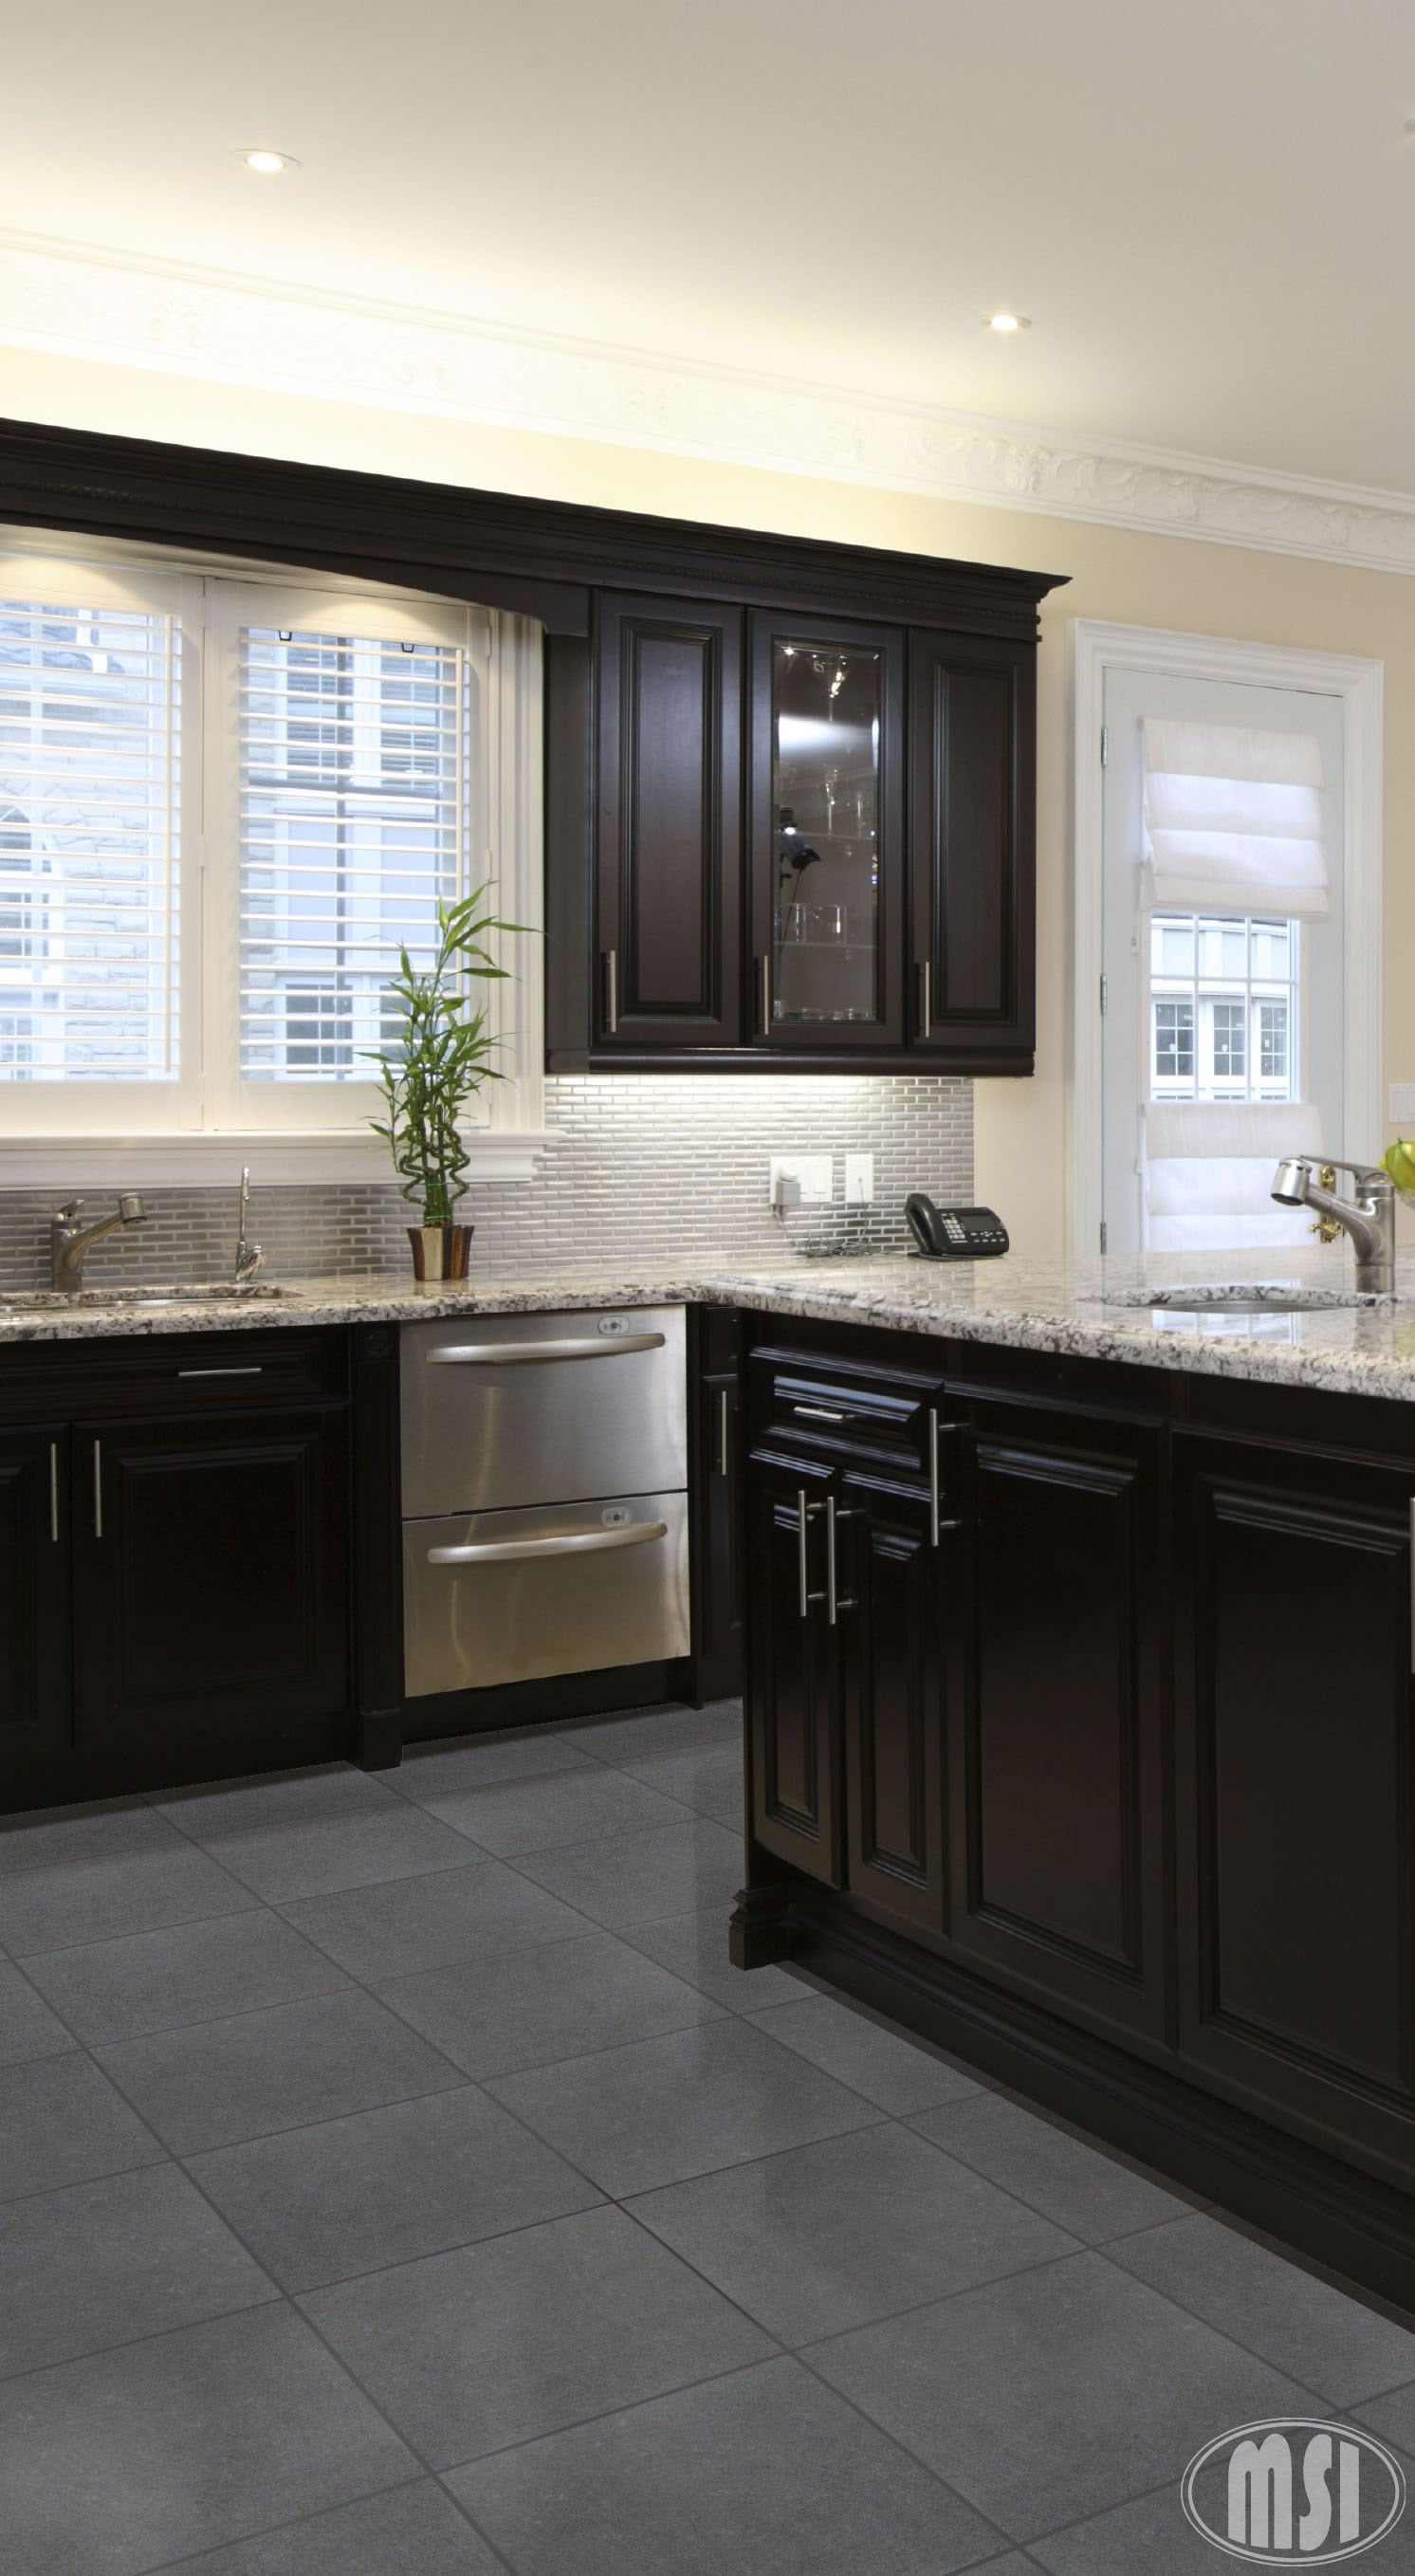 Moon White Granite With Dark Cabinets And Grey Floor Home Kitchens Kitchen Renovation Dark Kitchen Cabinets